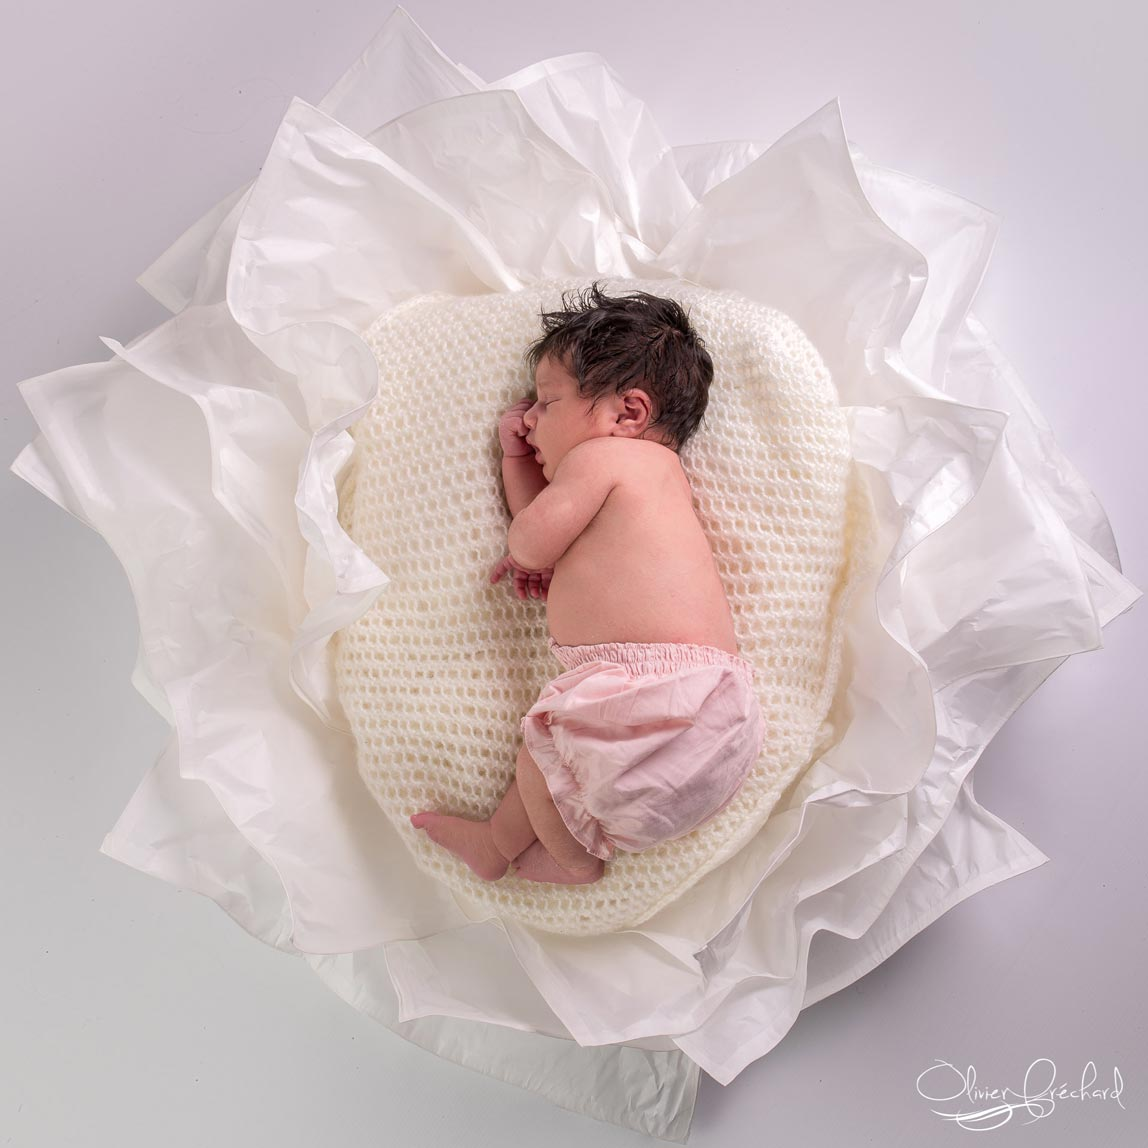 photo de bébé en studio à Strasbourg